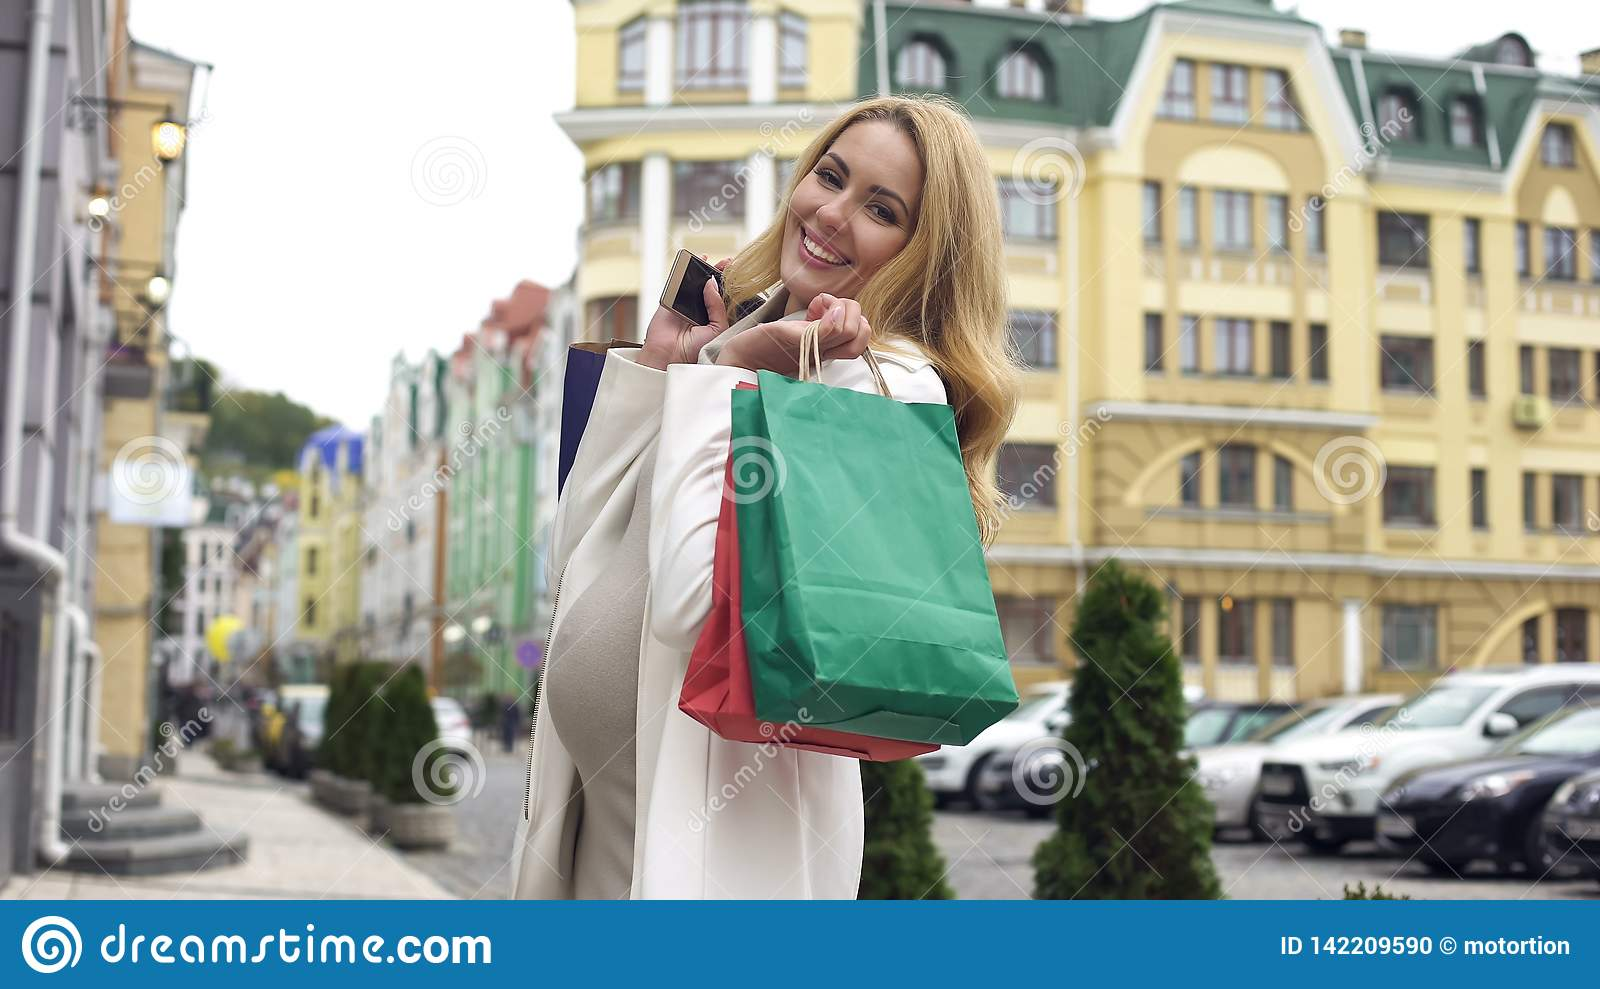 Beautiful pregnant woman smiling in camera, holding shopping bags and smartphone